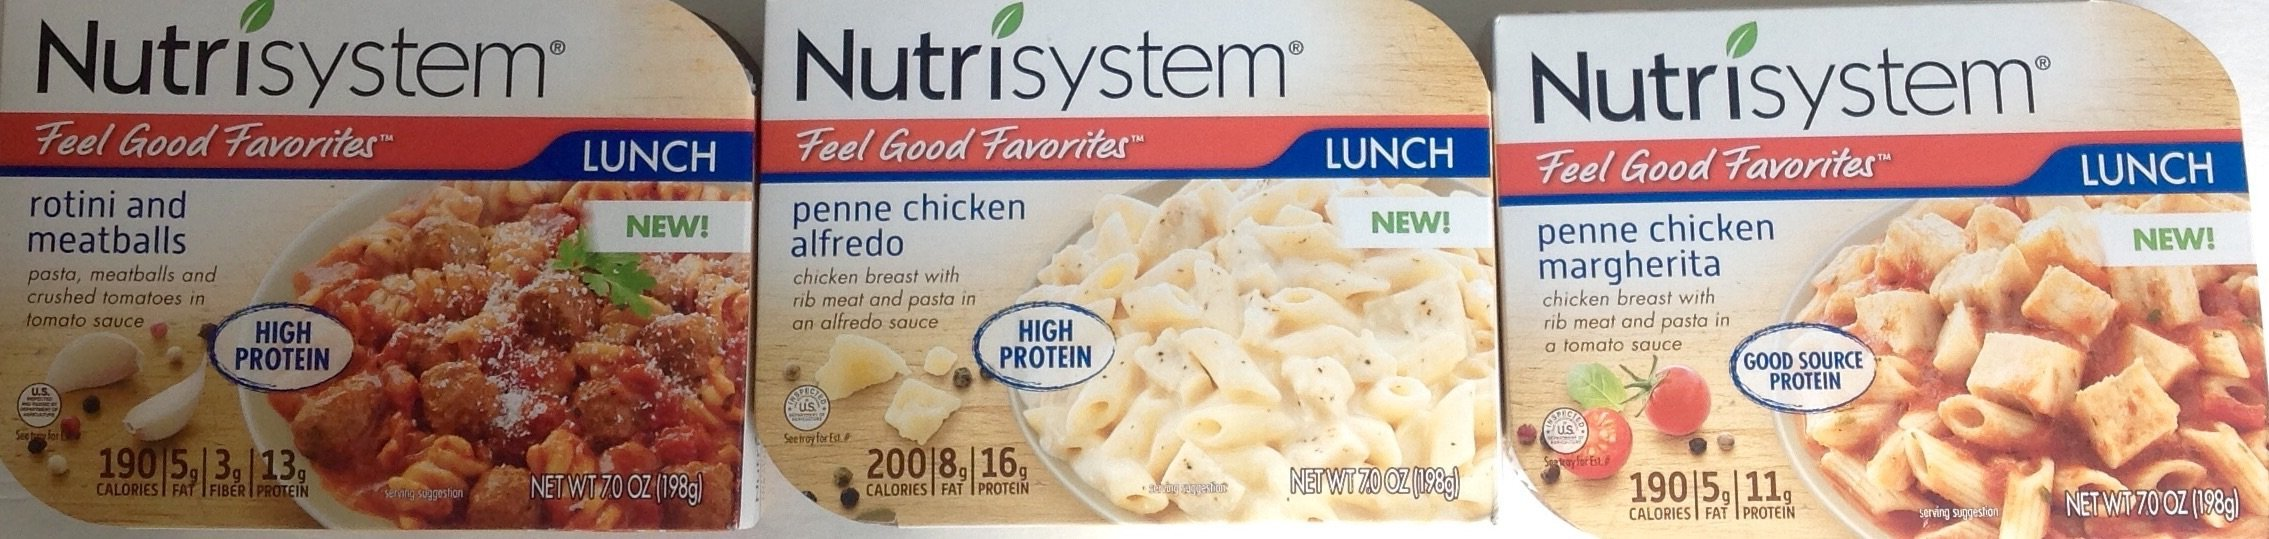 Nutrisystem Lunch Bundle 3 pack: Penne Chicken Margherita, Penne Chicken Alfredo, Rotini and Meatballs (1 Pack of Each)